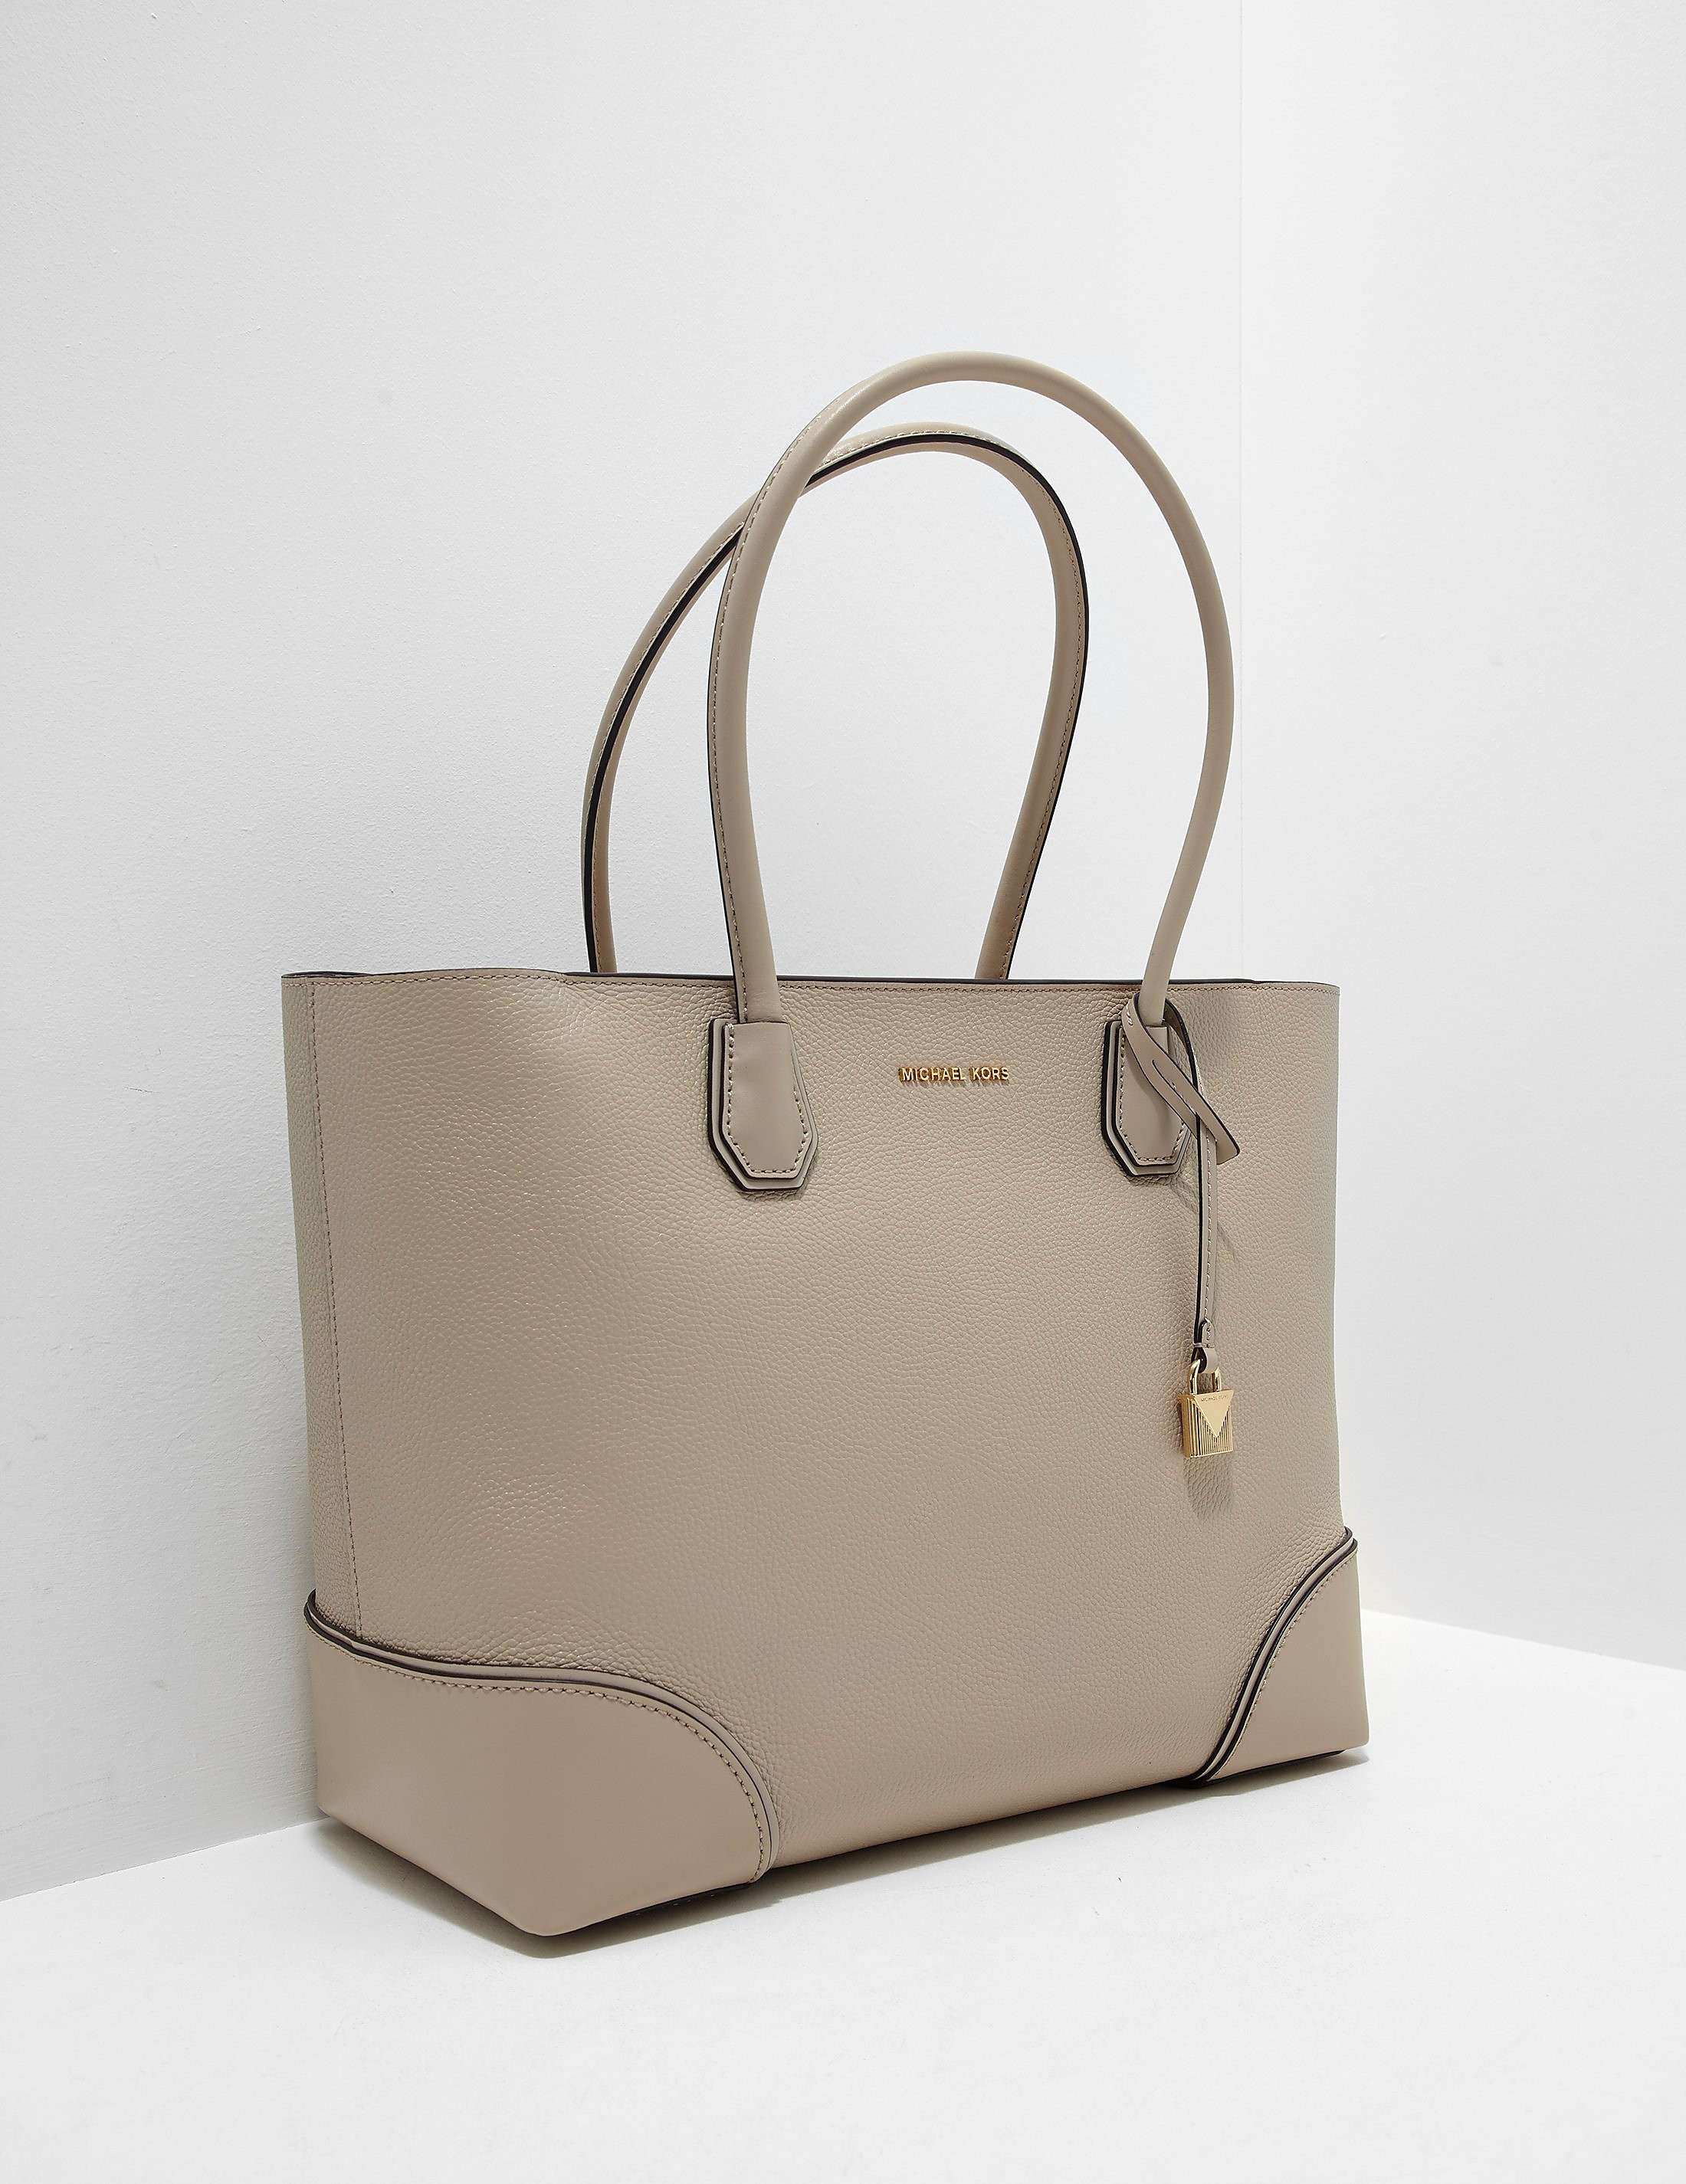 Michael Kors Mercer Tote Bag